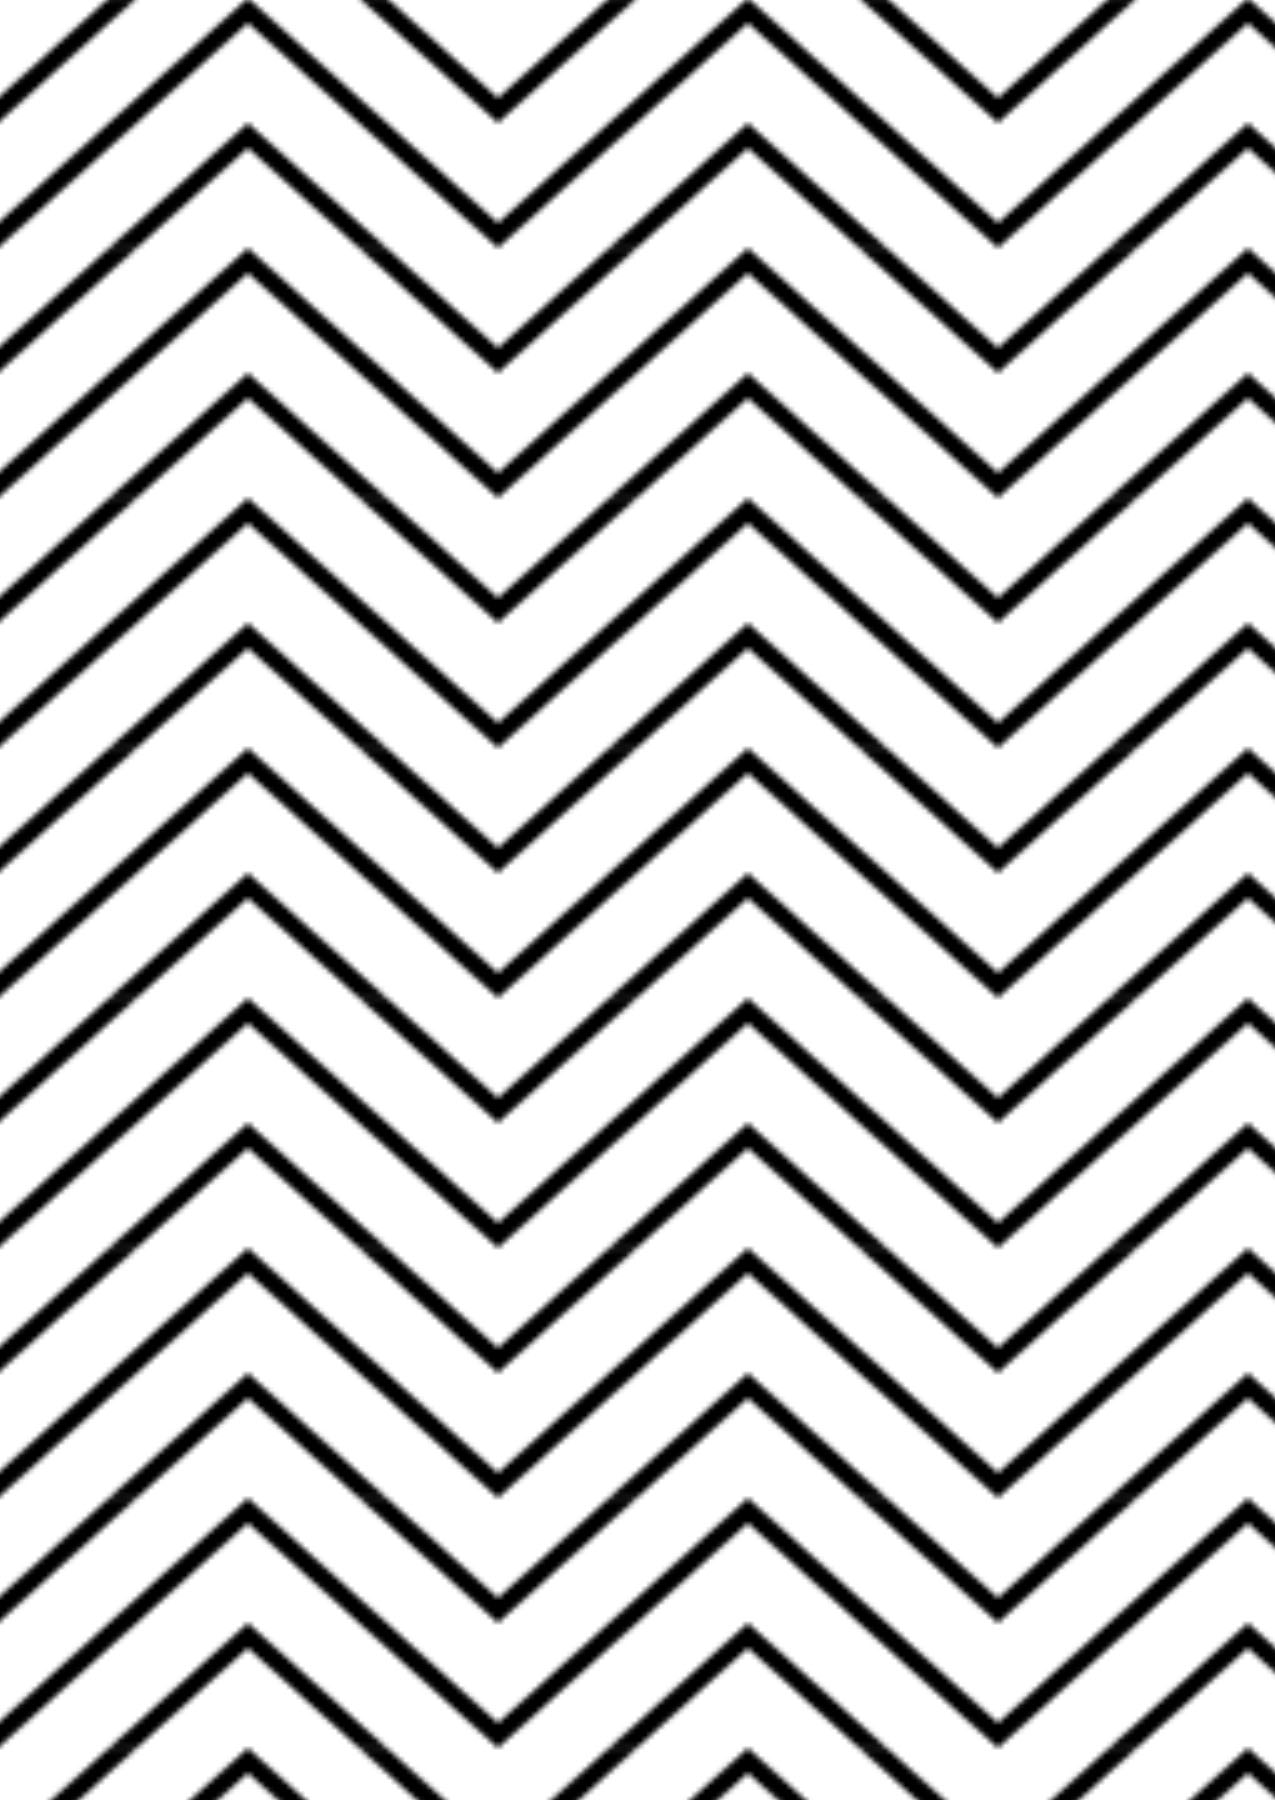 Zig zag pattern black and white clipart image freeuse library Free Zigzag Clipart Black And White, Download Free Clip Art ... image freeuse library